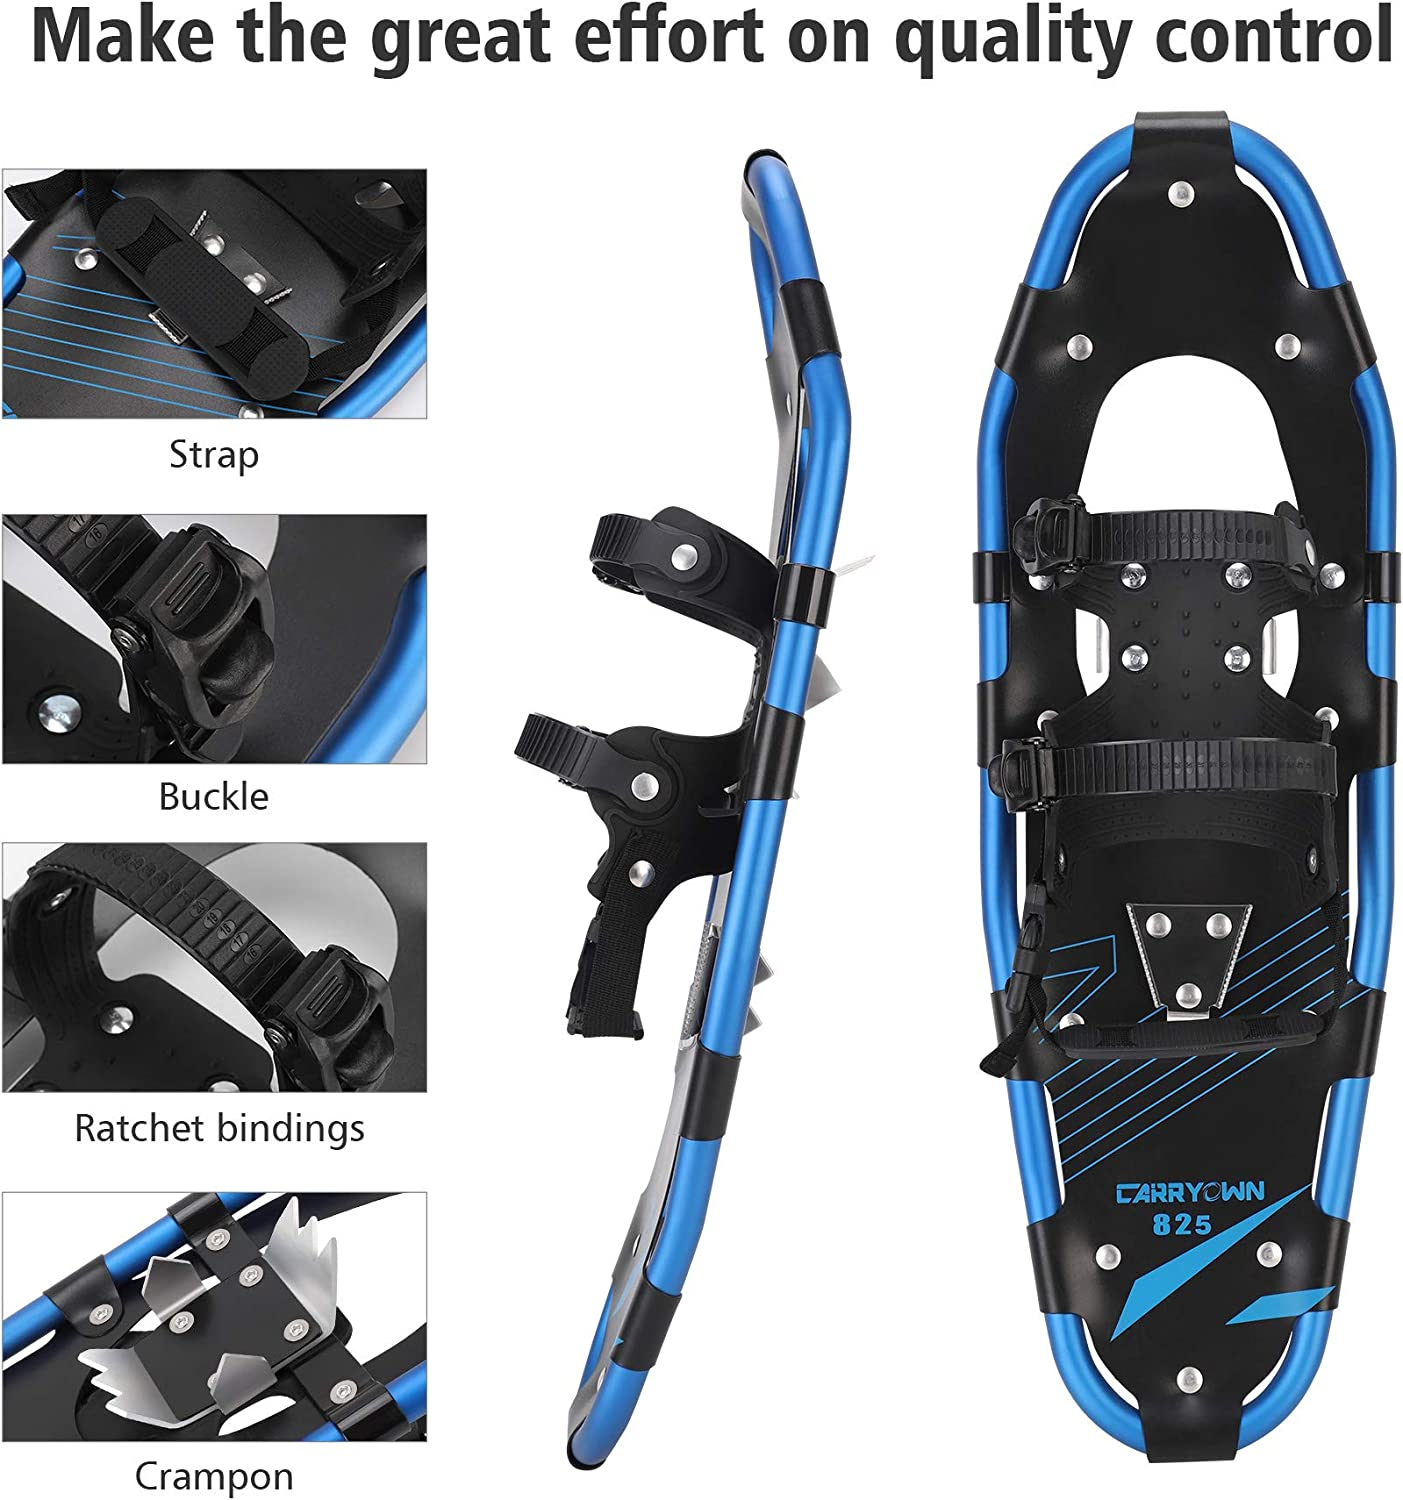 Gpeng 4-in-1 Xtreme Lightweight Terrain Snowshoes for Men Women Youth Kids 14//21//25//27//30 Light Weight Aluminum Alloy Terrain Snow Shoes with Trekking Poles and Free Waterproof Leg Gaiters